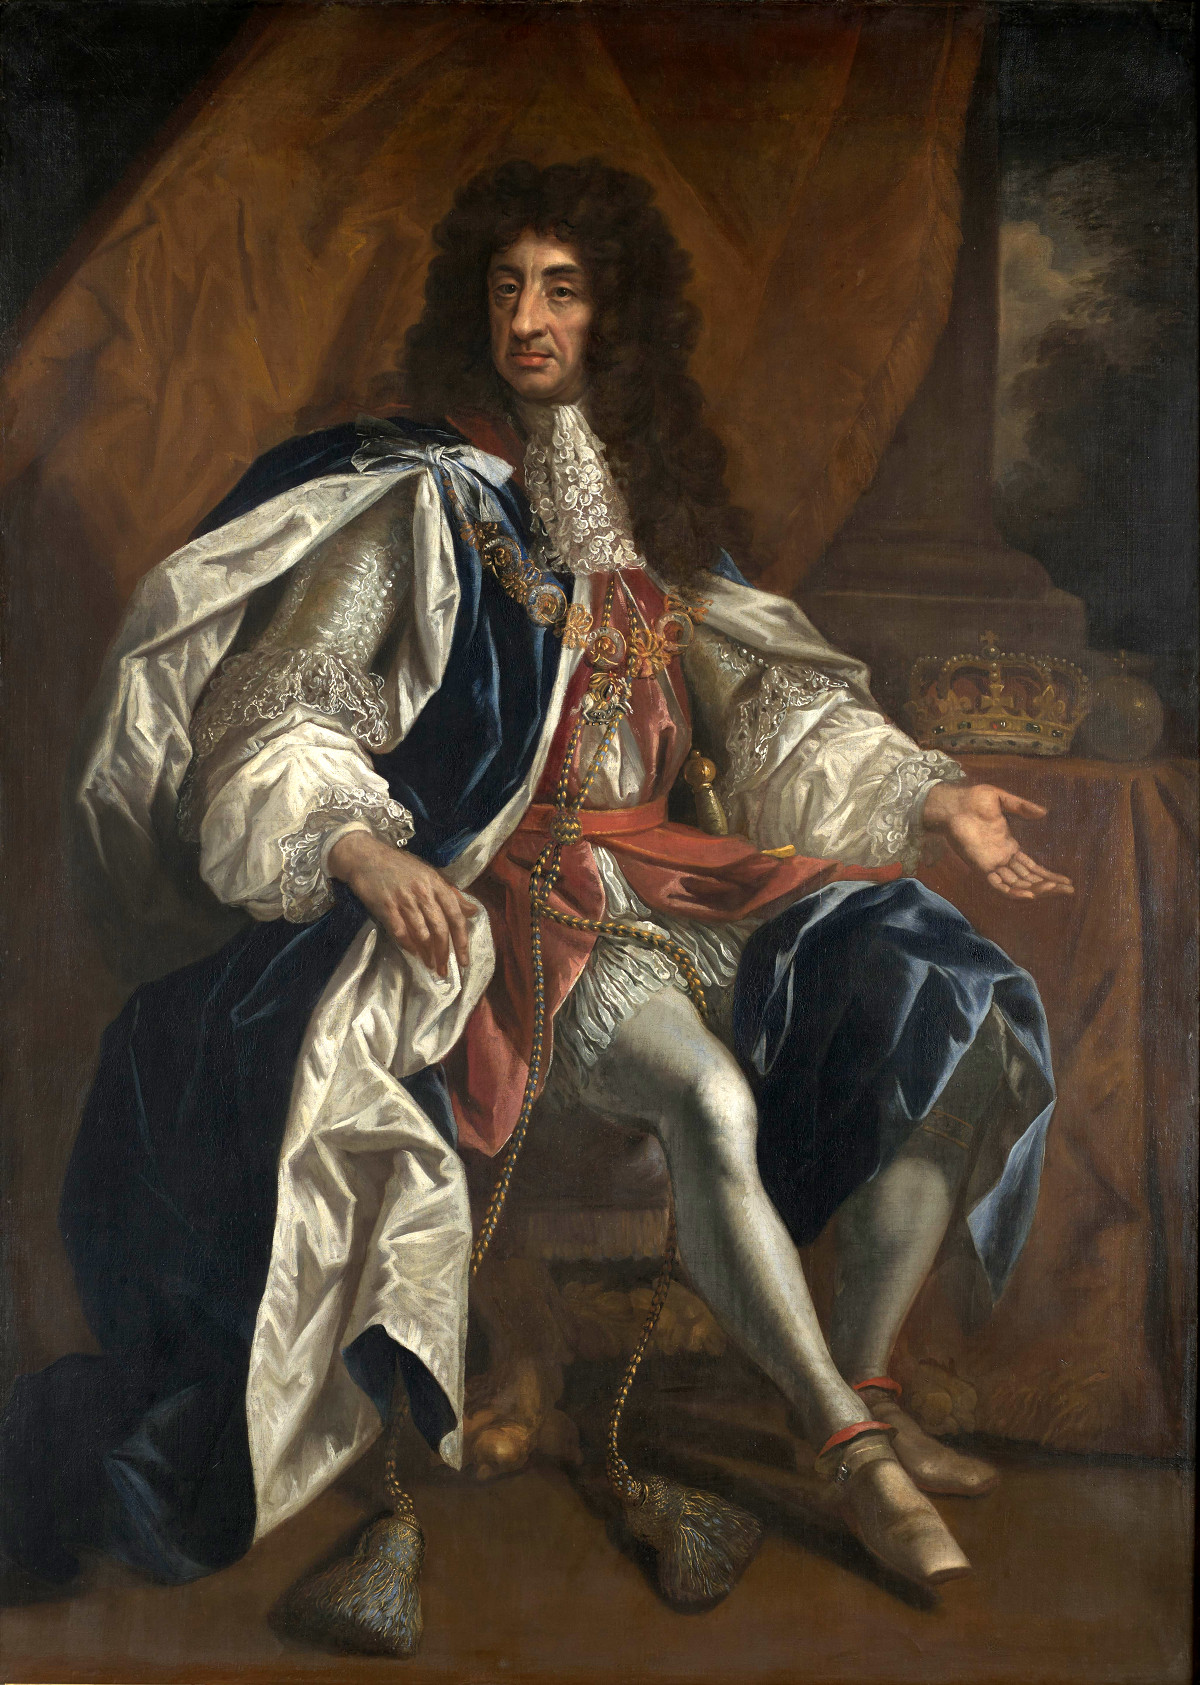 Portrait of King Charles II of England, Scotland and Ireland by Thomas Hawker, 1660